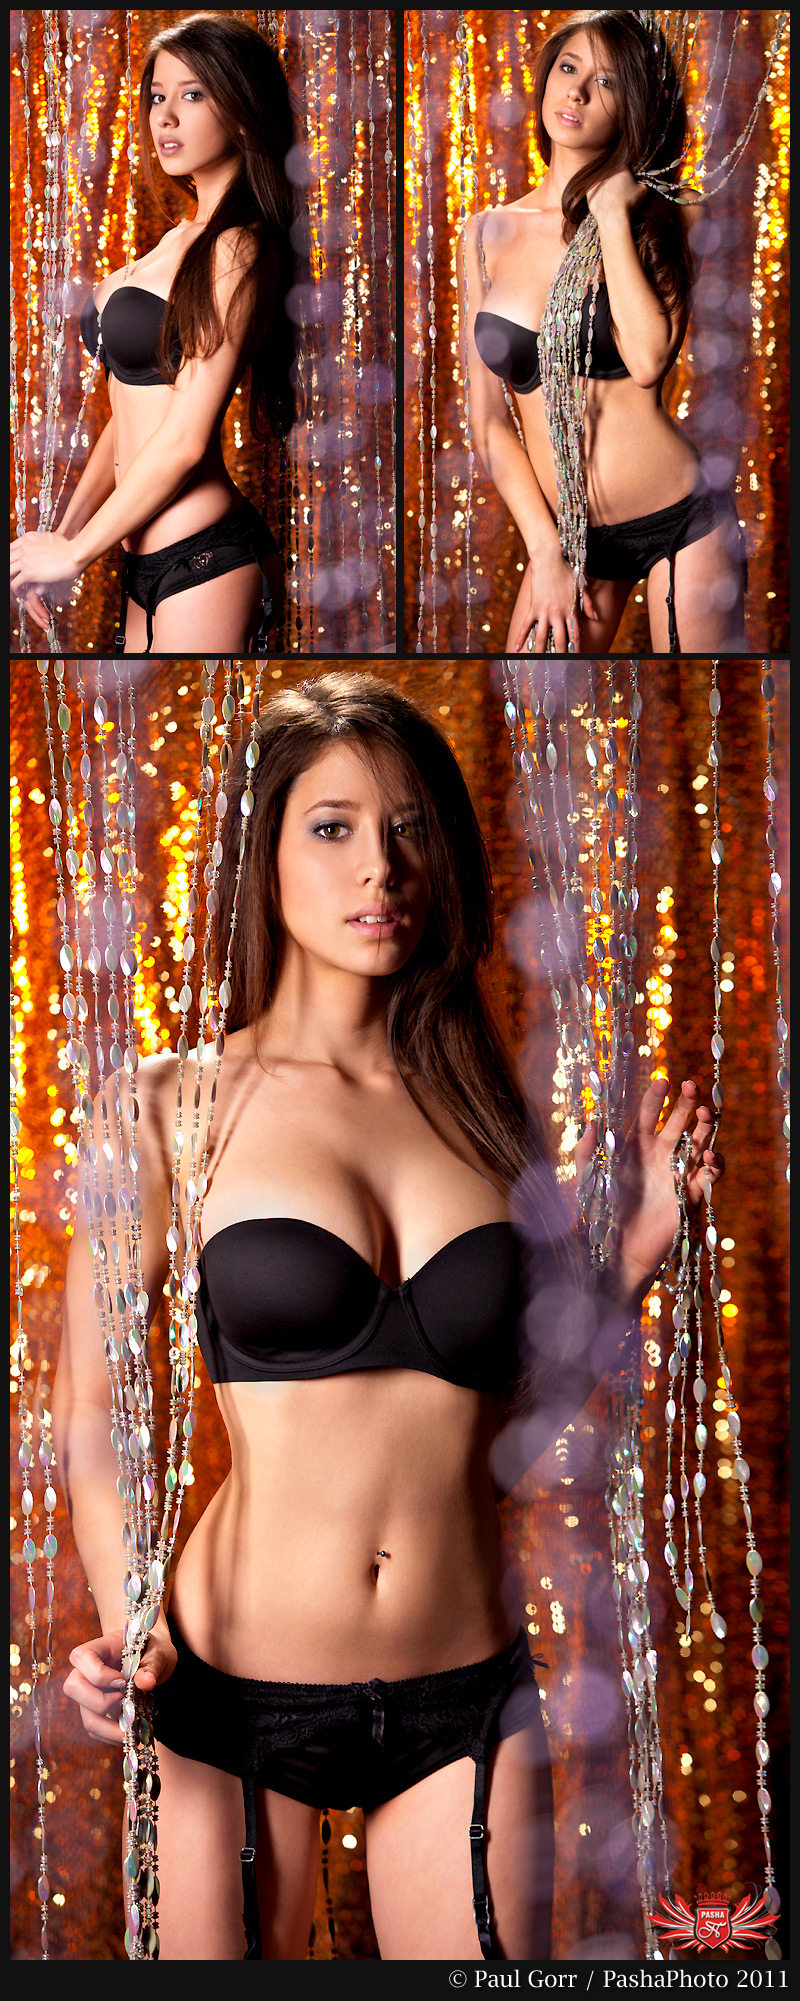 Studio 212 - Metuchen, NJ. Mar 16, 2011 Paul Gorr - PashaPhoto 2011 Meela... shiny set :)